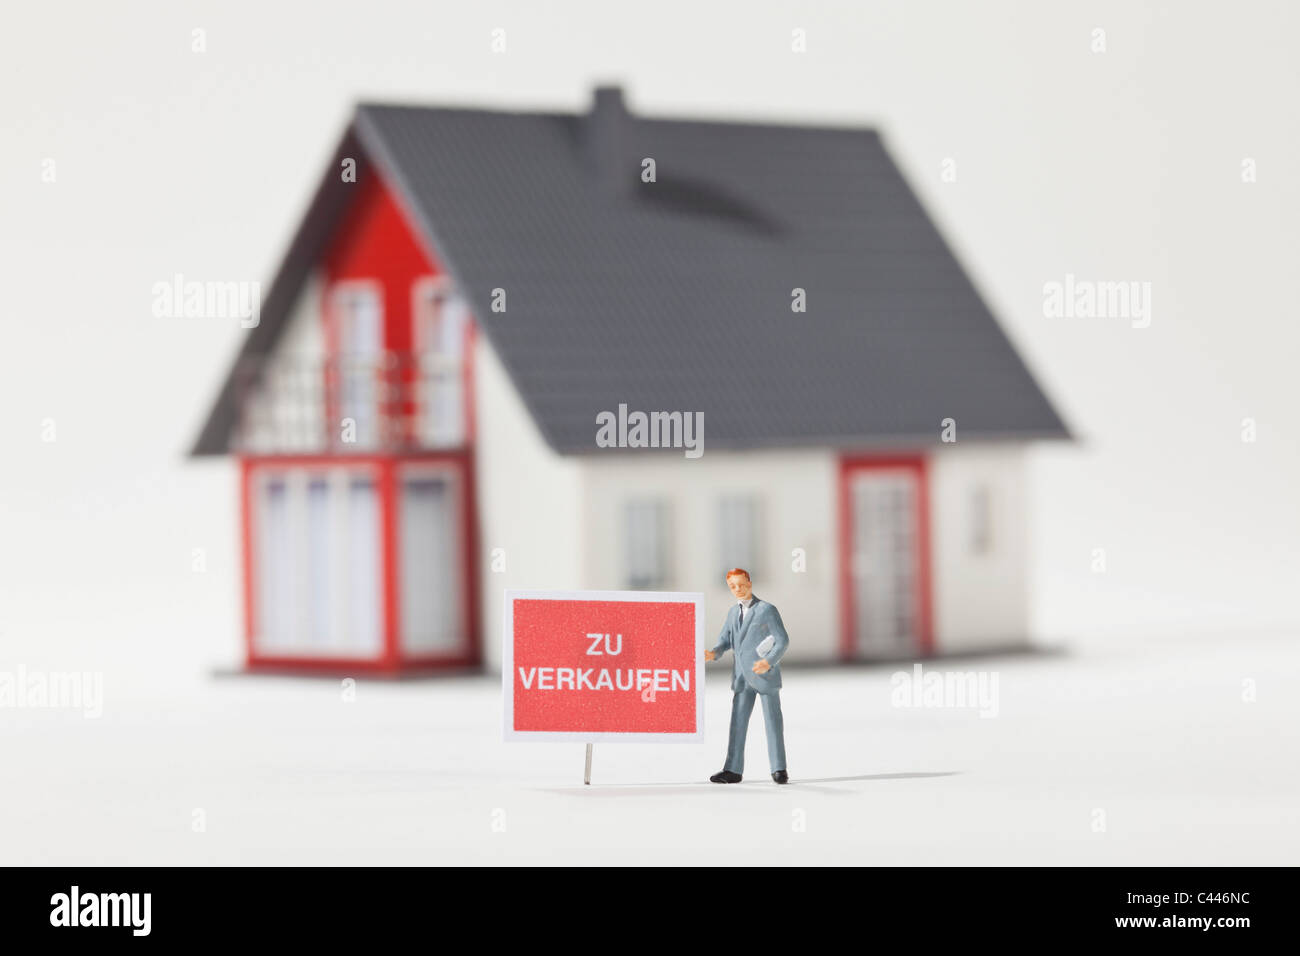 A miniature real estate agent figurine next to a ZU VERKAUFEN (for sale in German) sign - Stock Image